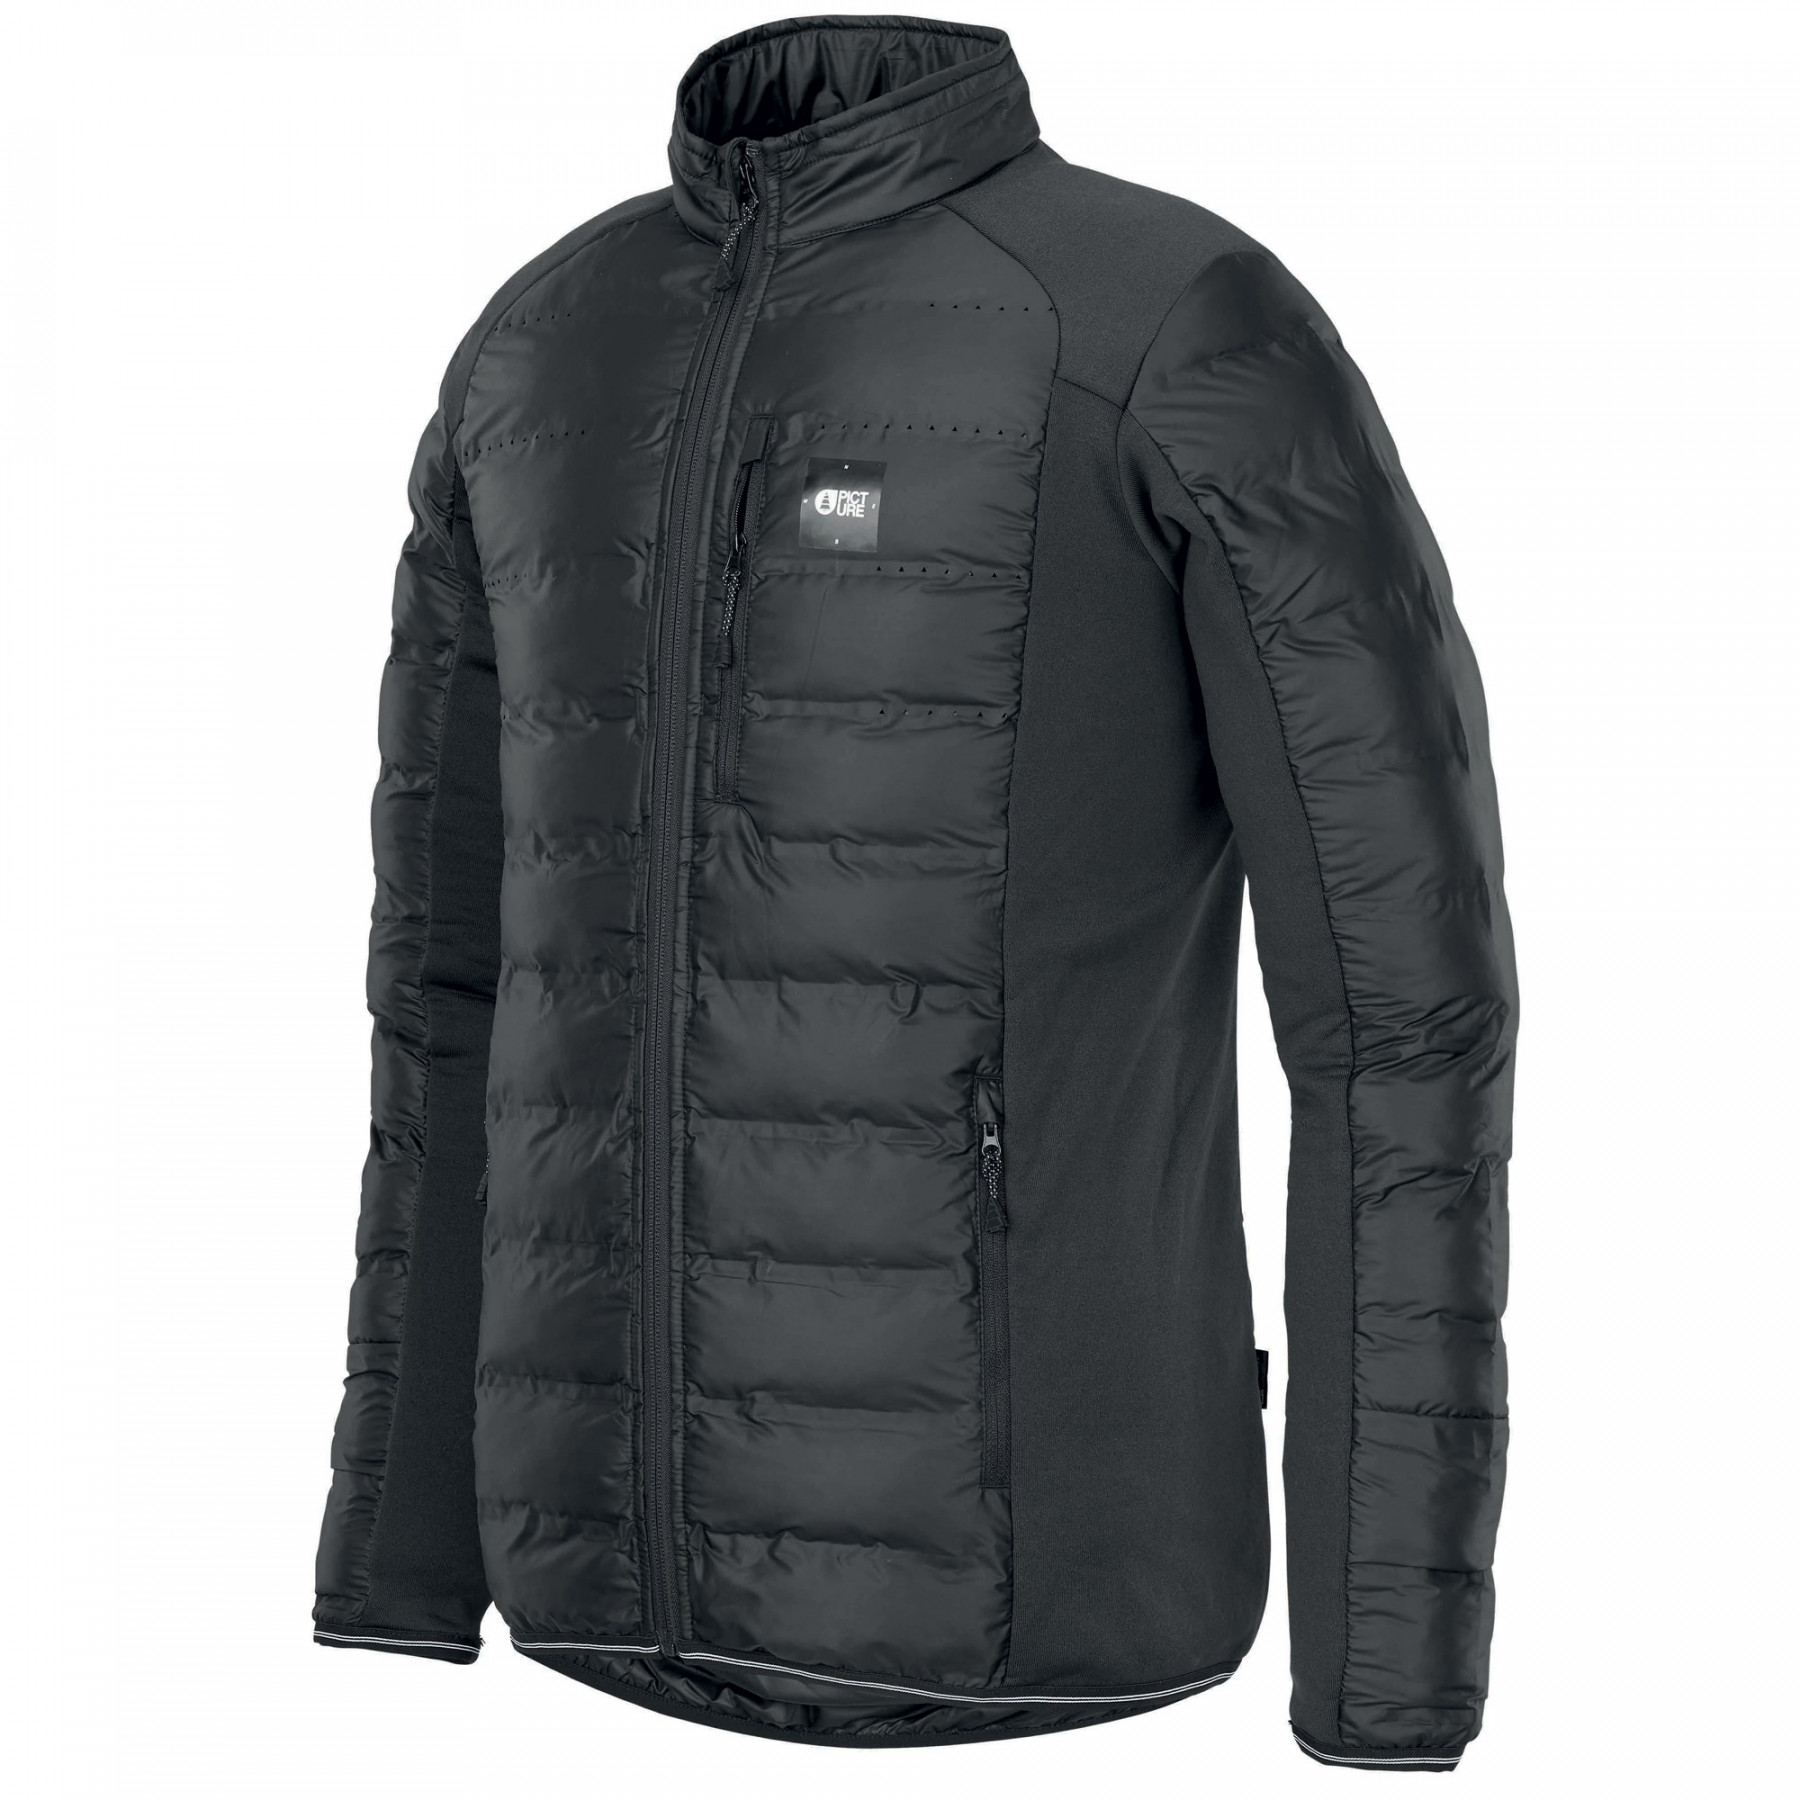 Doudoune Horse Jacket - Black 0